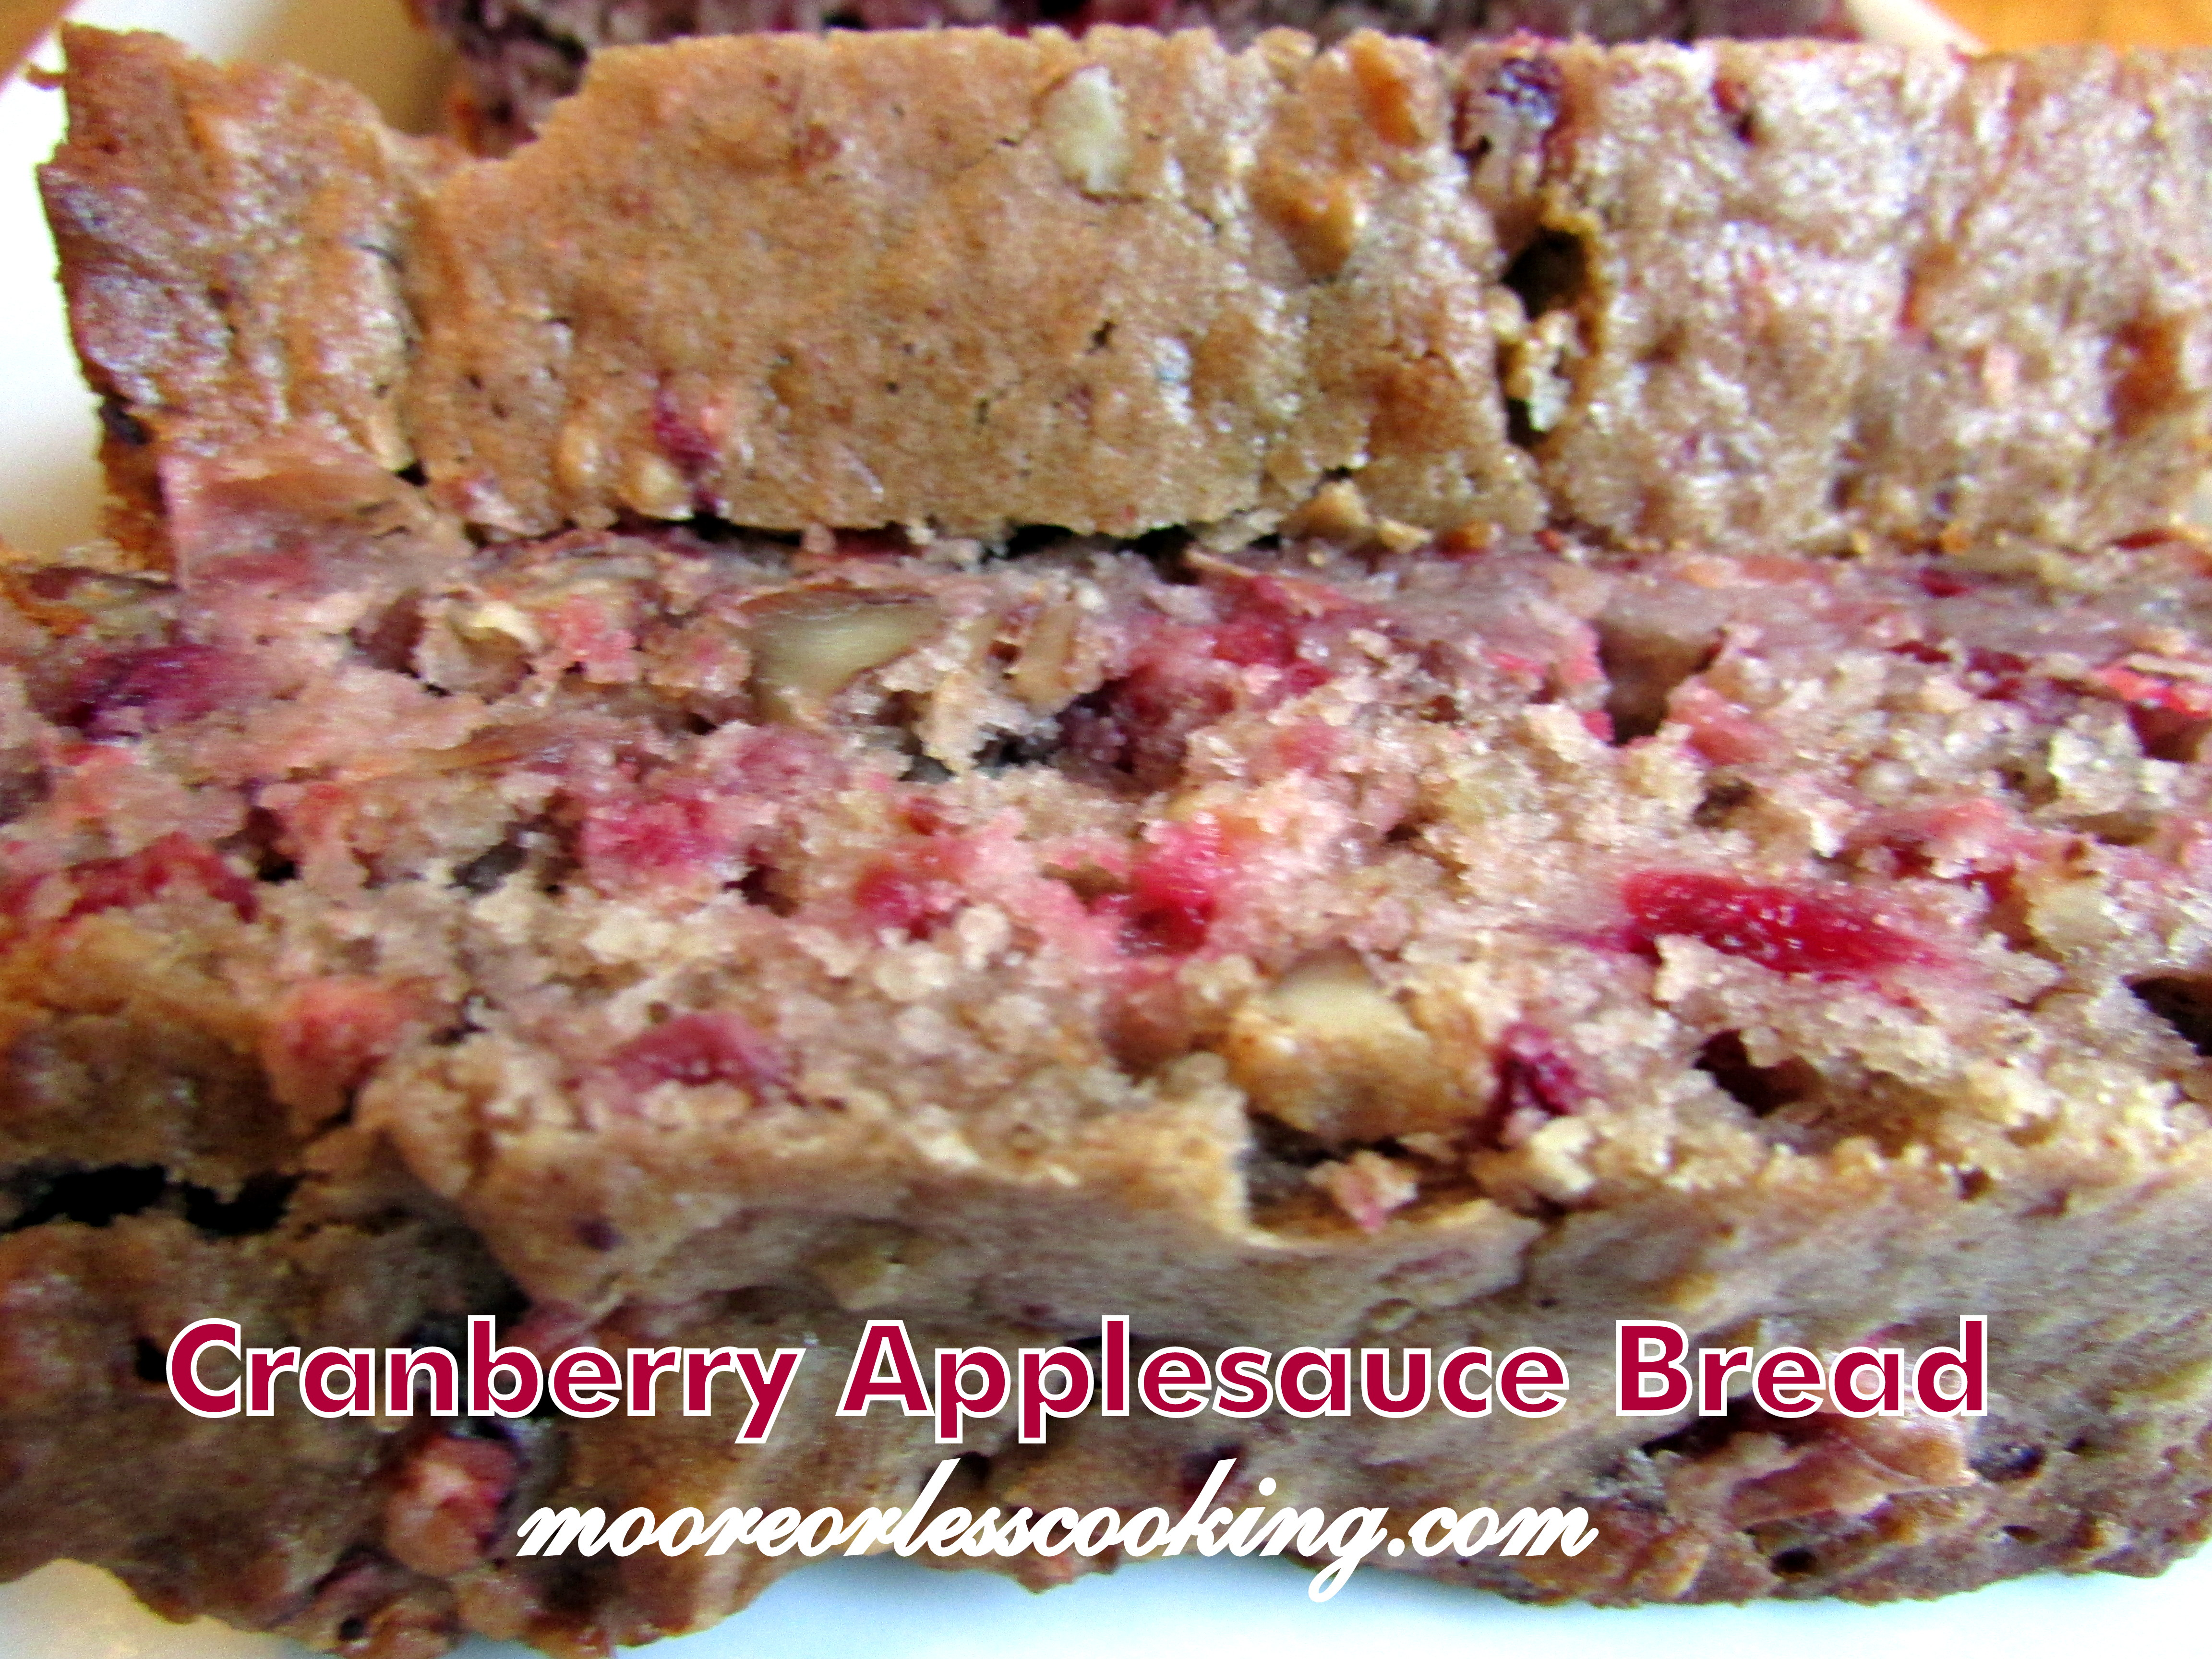 Cranberry Applesauce Bread Moore Or Less Cooking